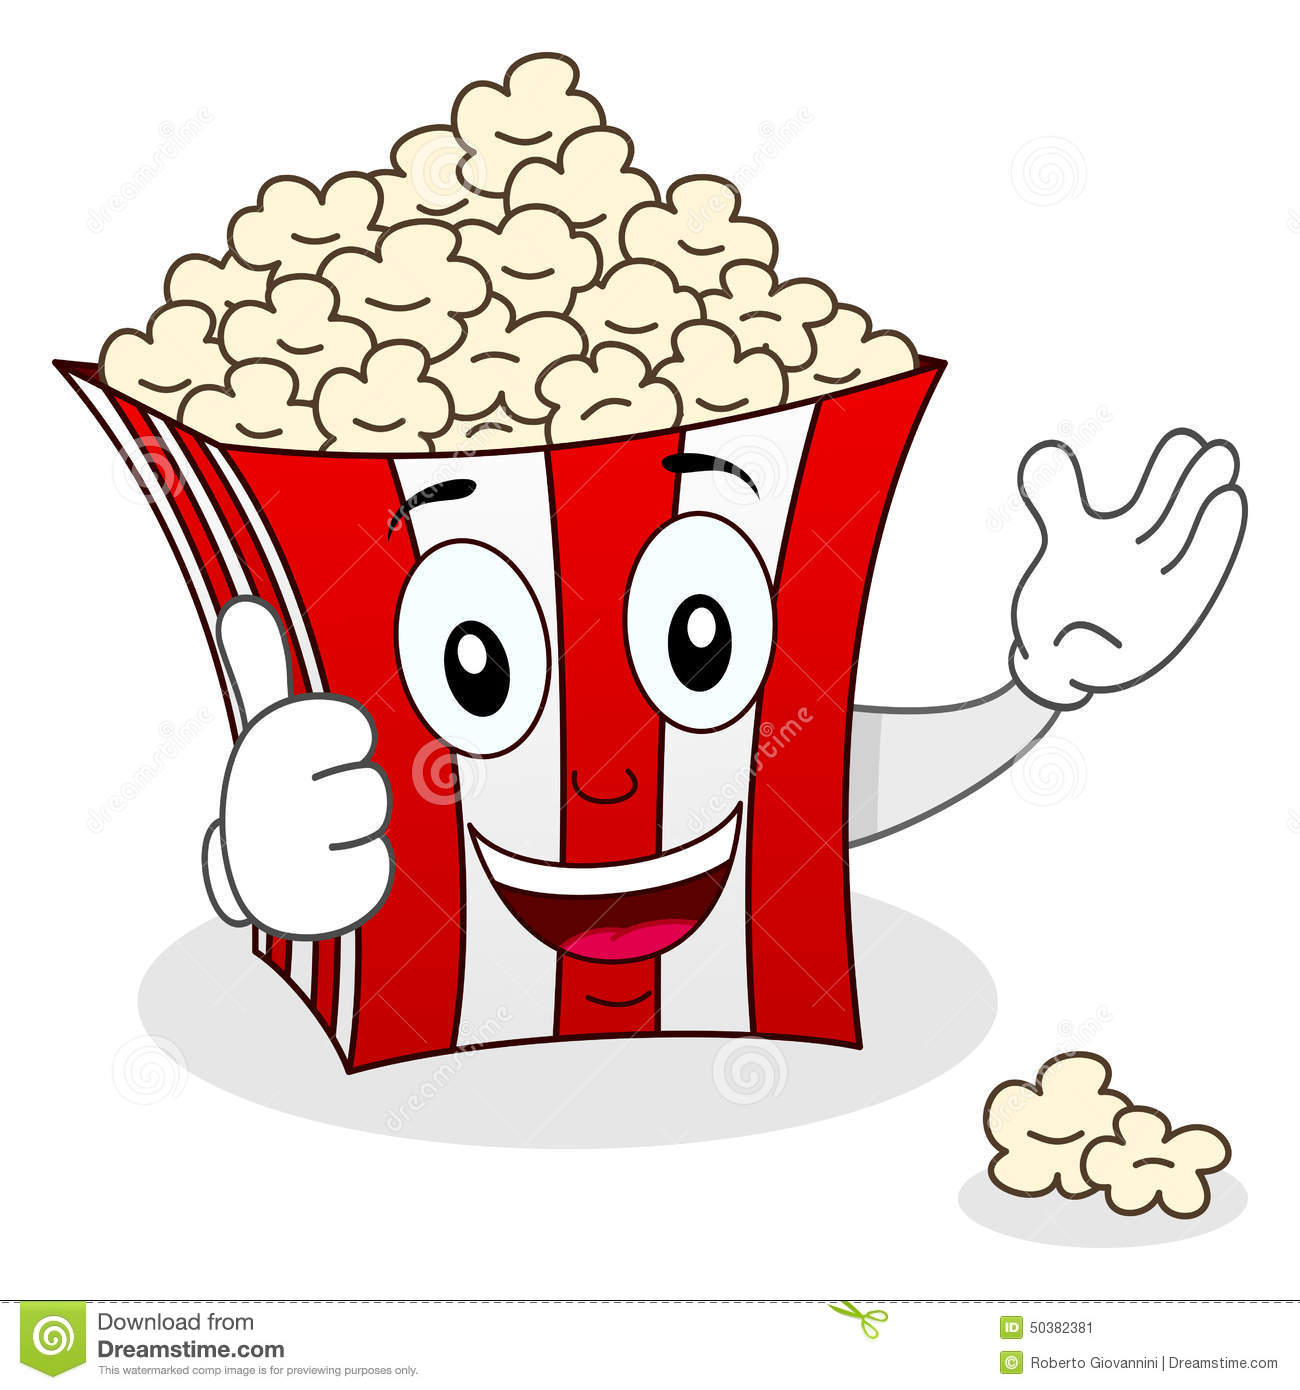 Striped Popcorn Bag Character Smiling Stock Vector - Image: 50382381